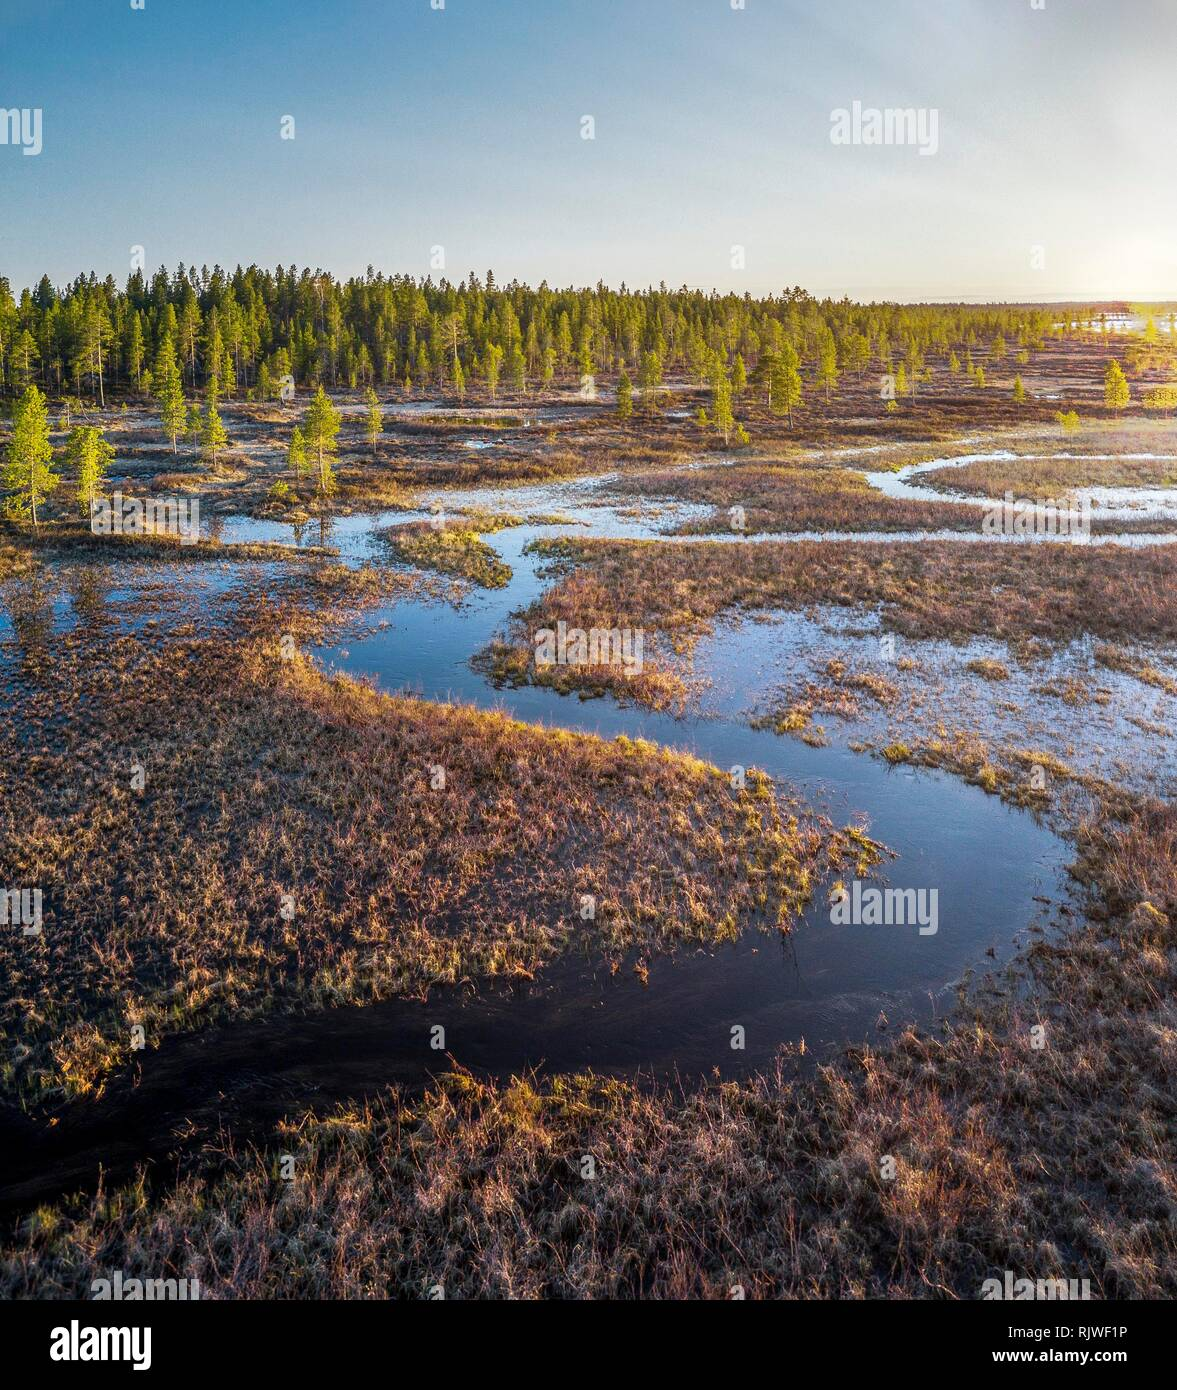 Drone shot, wetland with meander and Pines (Pinus), Lake Inari, Inari, Lapland, Finland - Stock Image